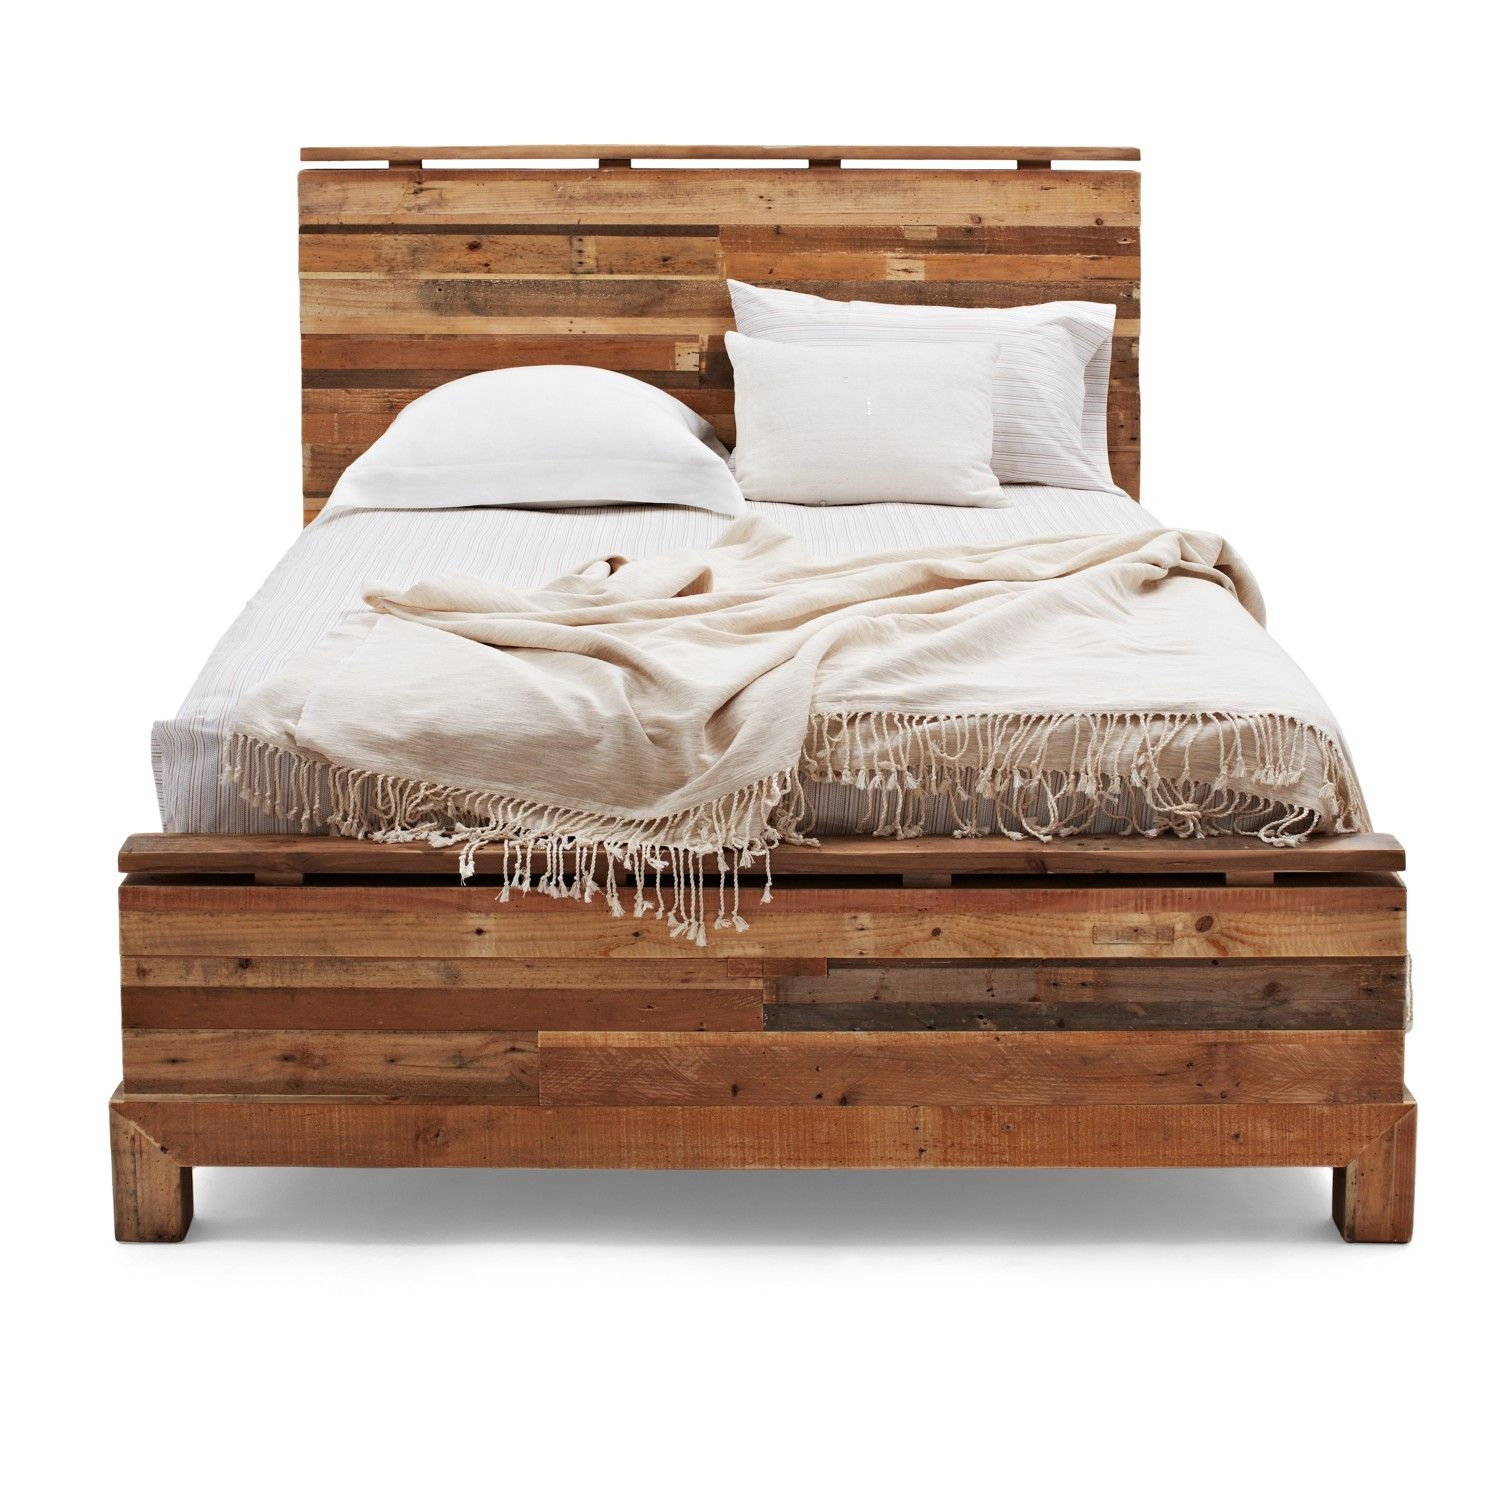 Wooden bed furniture design - Reclaimed Wood Bedroom